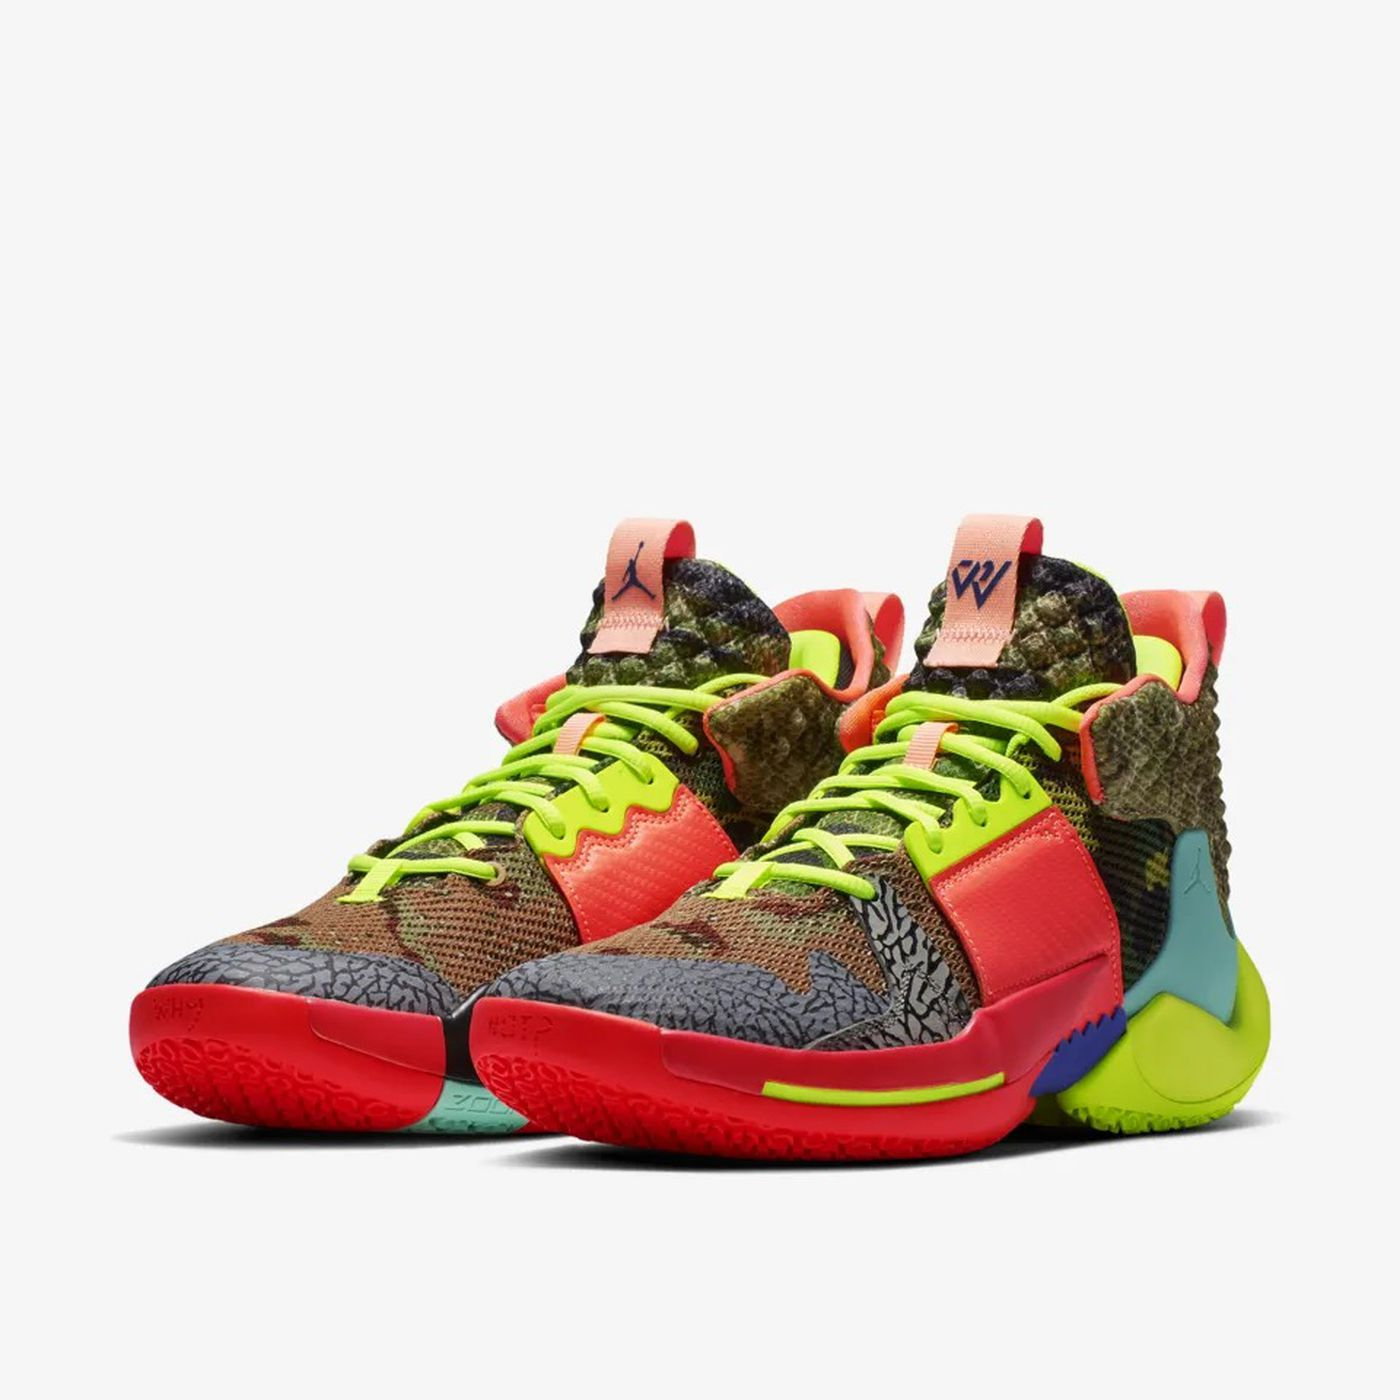 5556cca9196 NBA All-Star Game 2019: Russell Westbrook's latest Why Not Zer0.2 ...